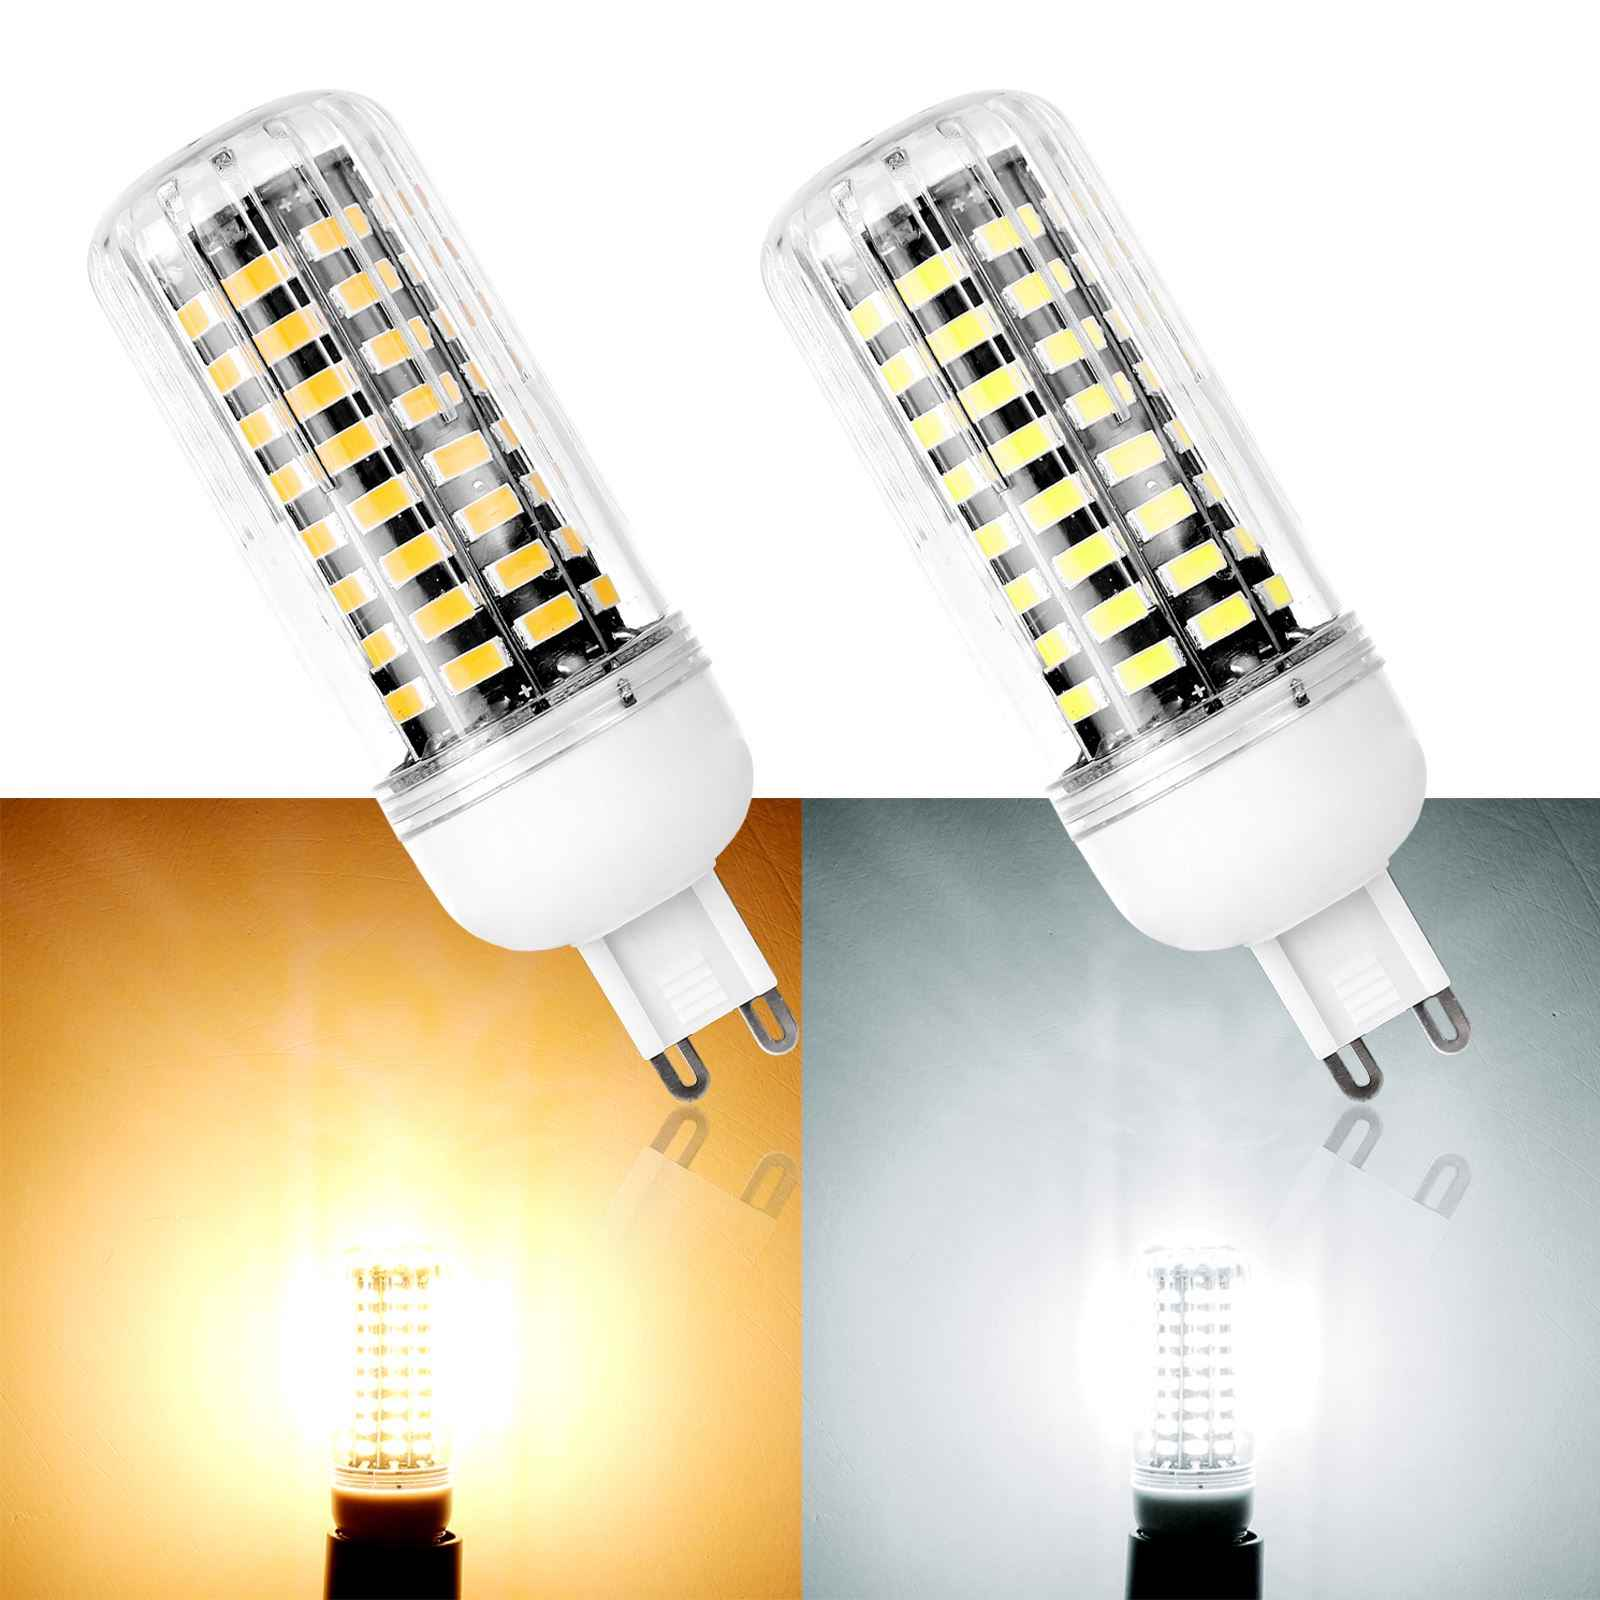 E27 LED Bulb E14 G9 B22 LED Bulb 220V Corn Bulb SMD5733 Chandelier Candle LED Light For Home Decoration Ampoule